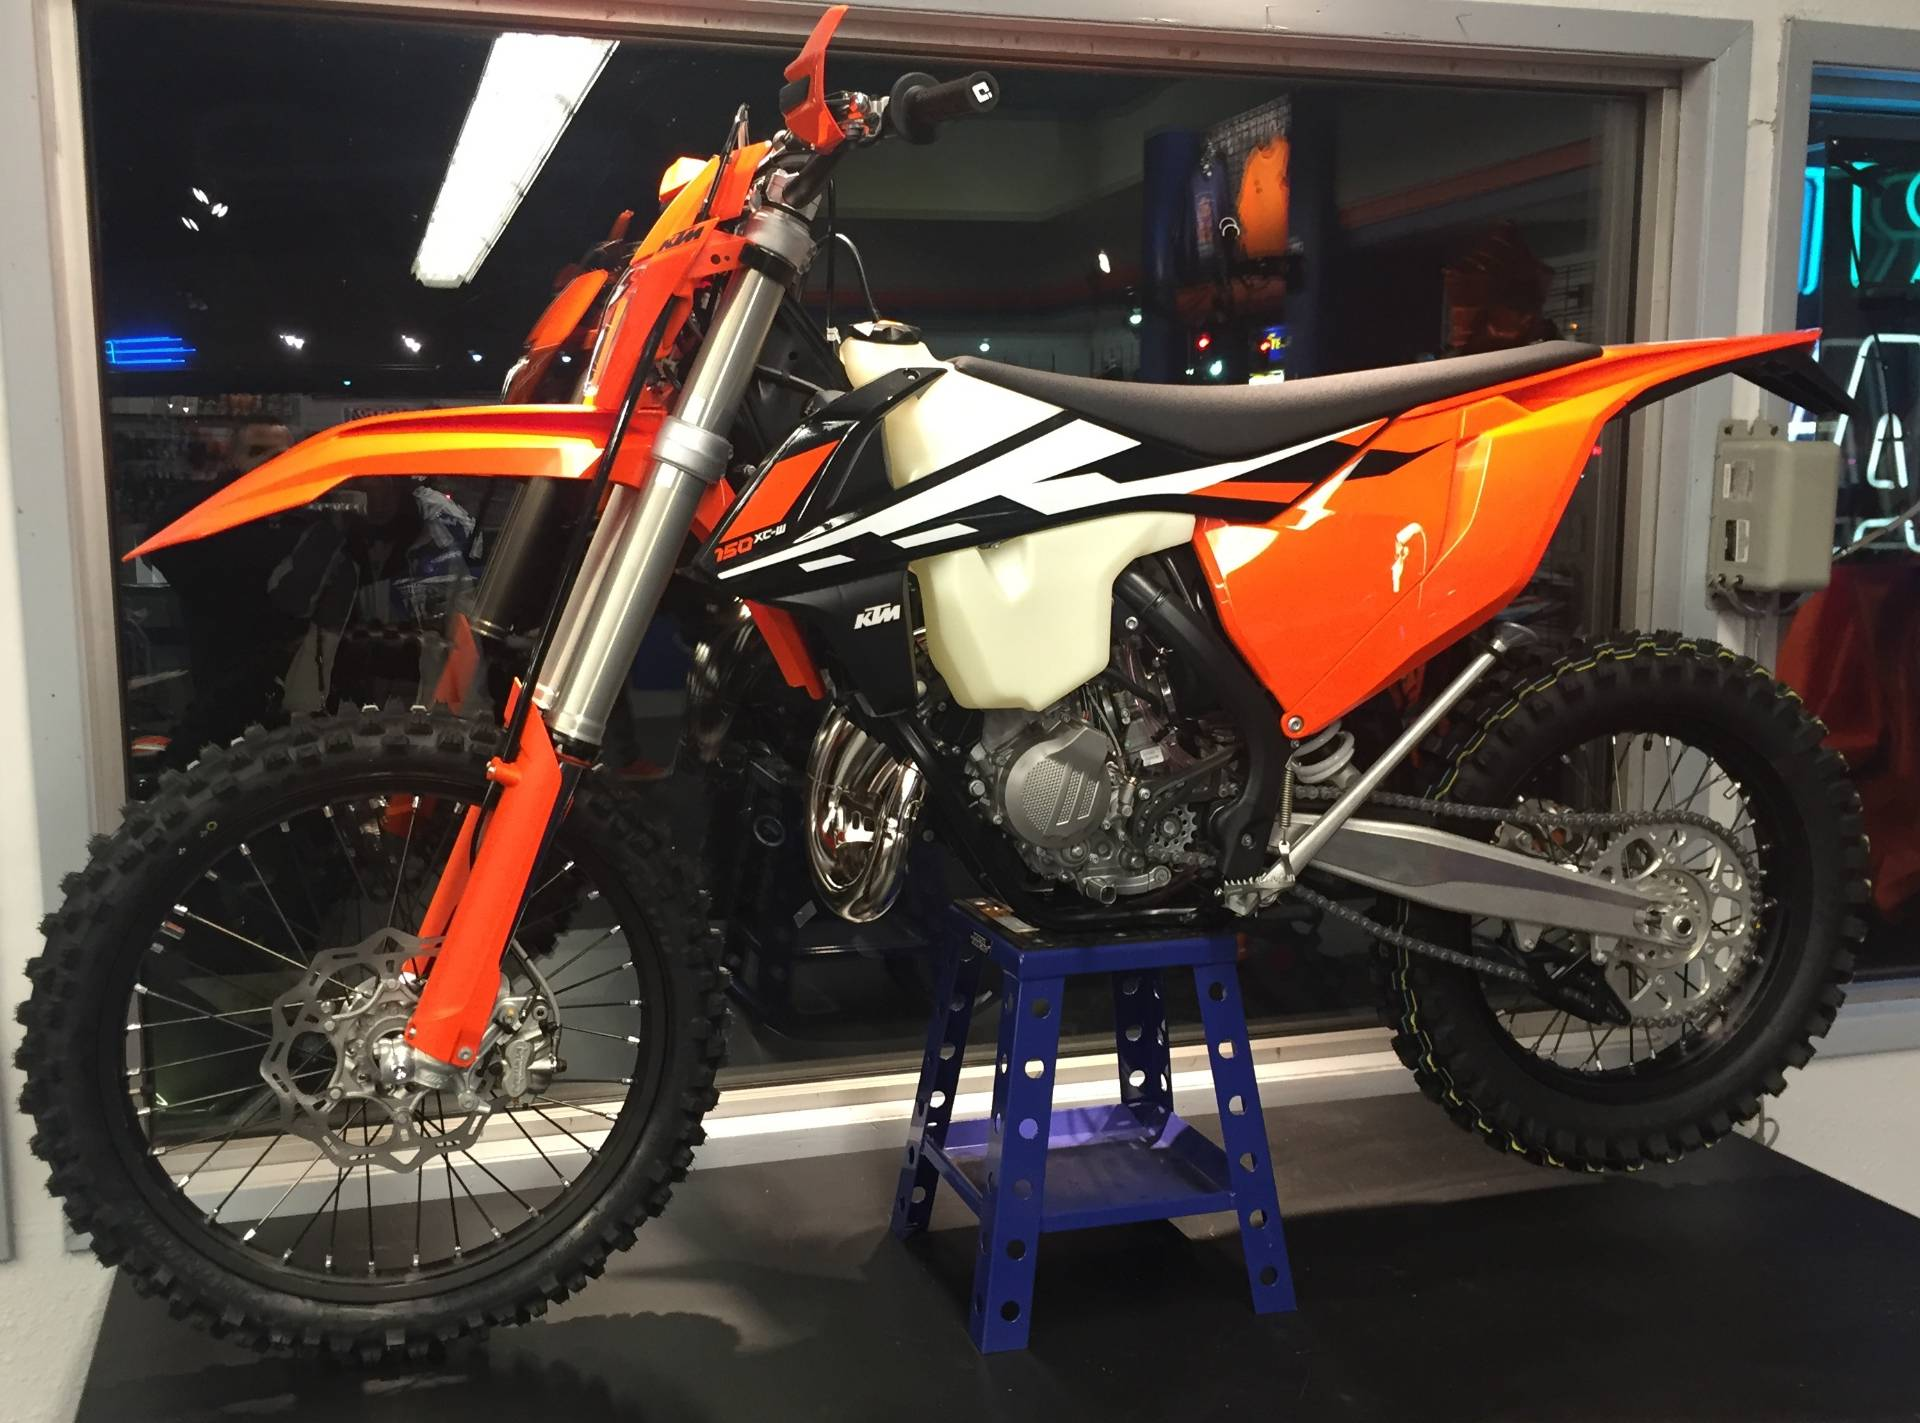 new 2017 ktm 150 xc-w motorcycles in hobart, in | stock number: n/a